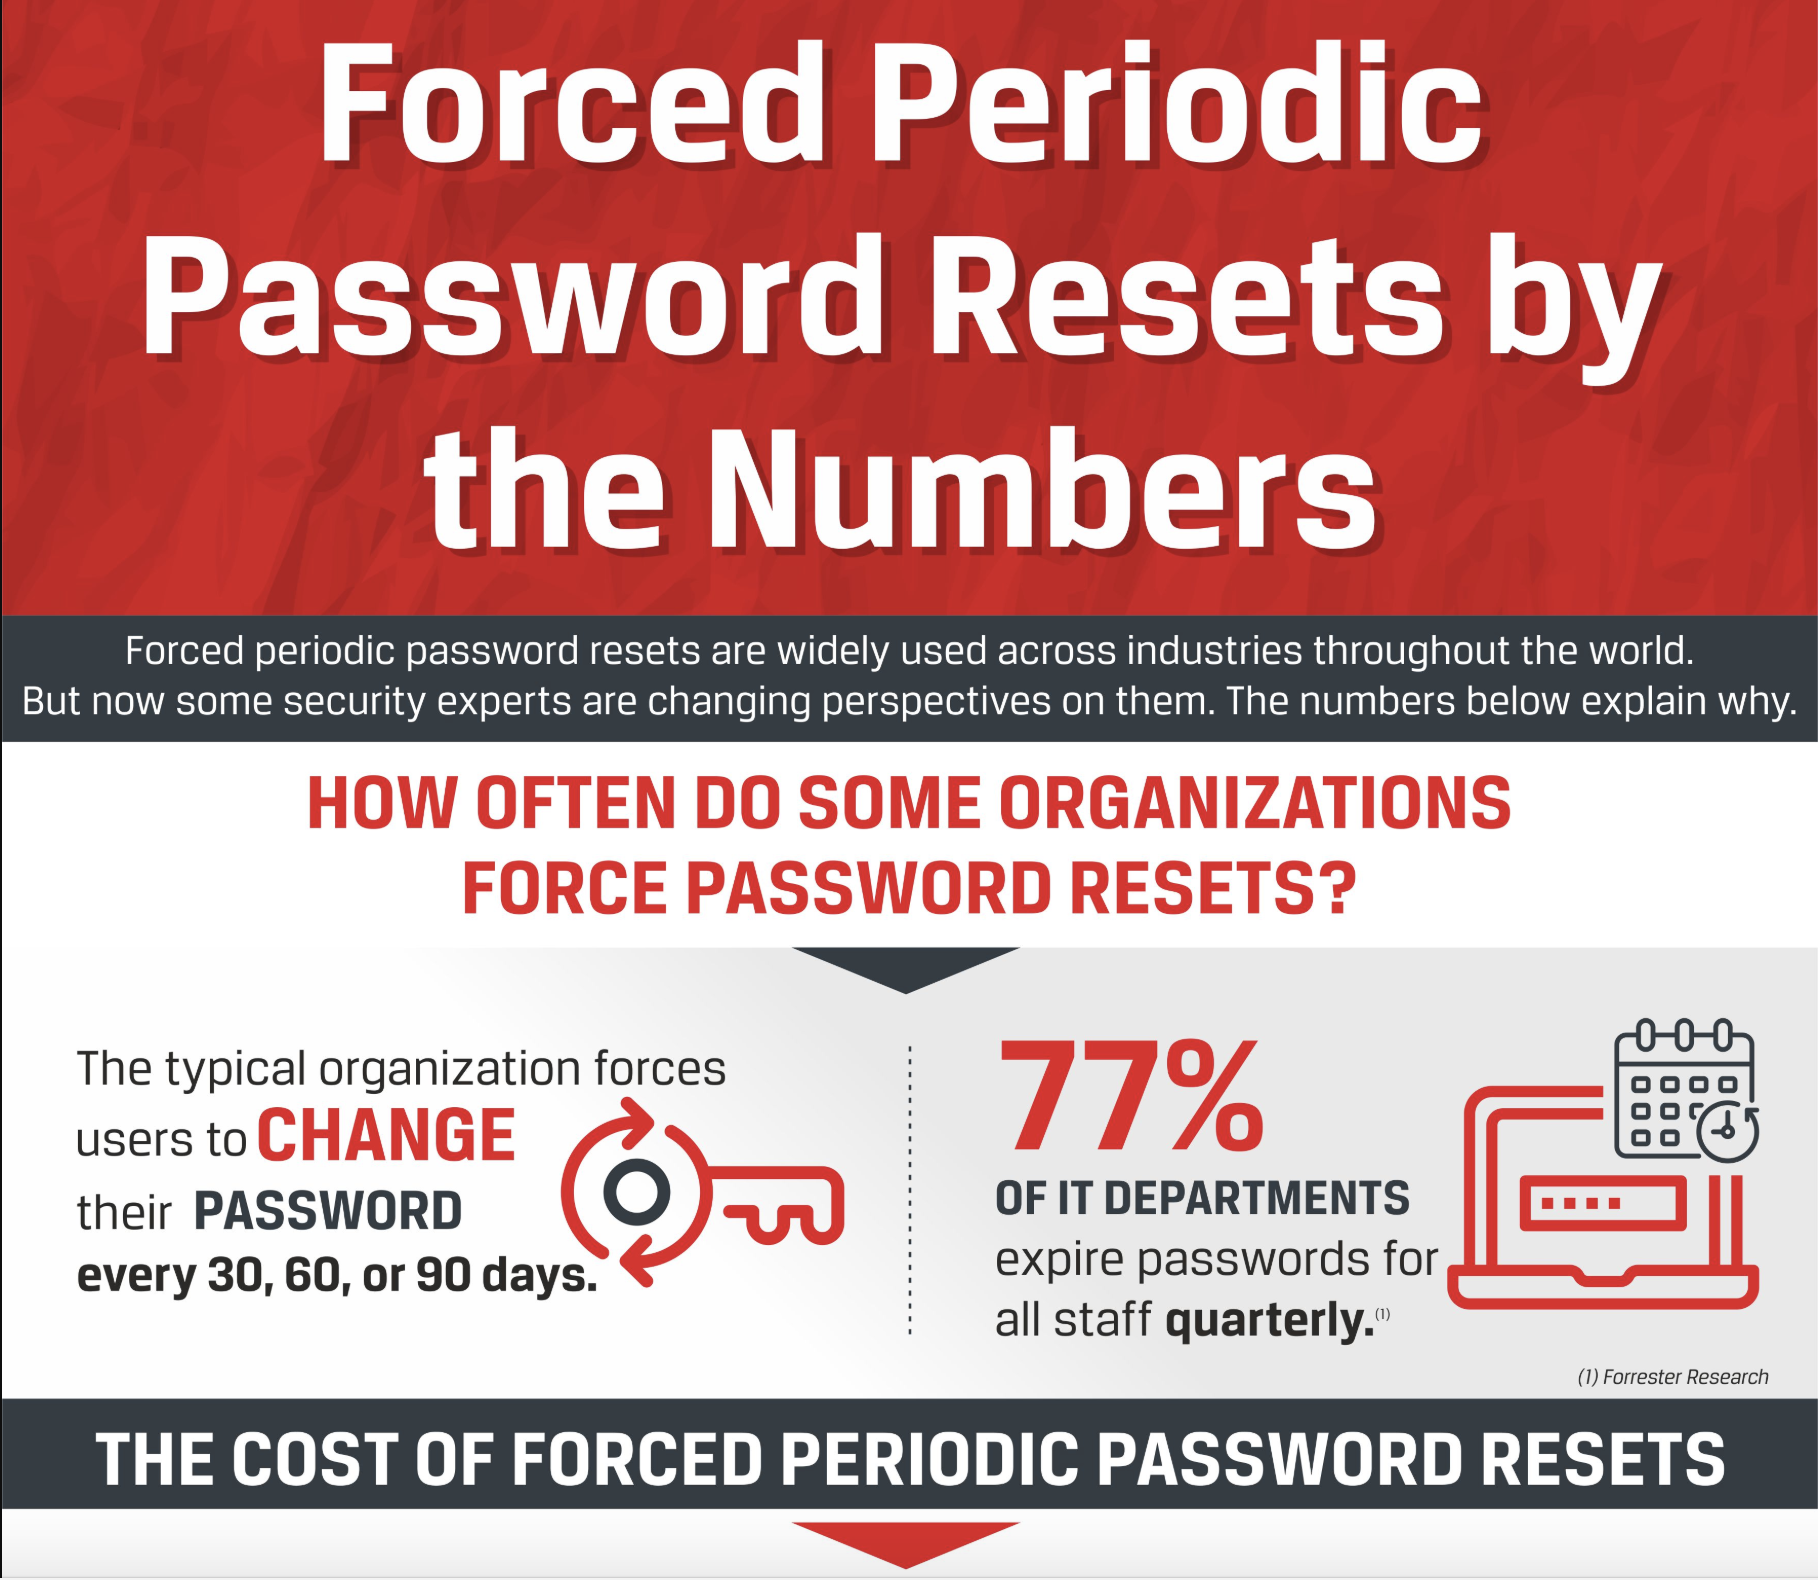 Forced Periodic Password Reset by the Numbers